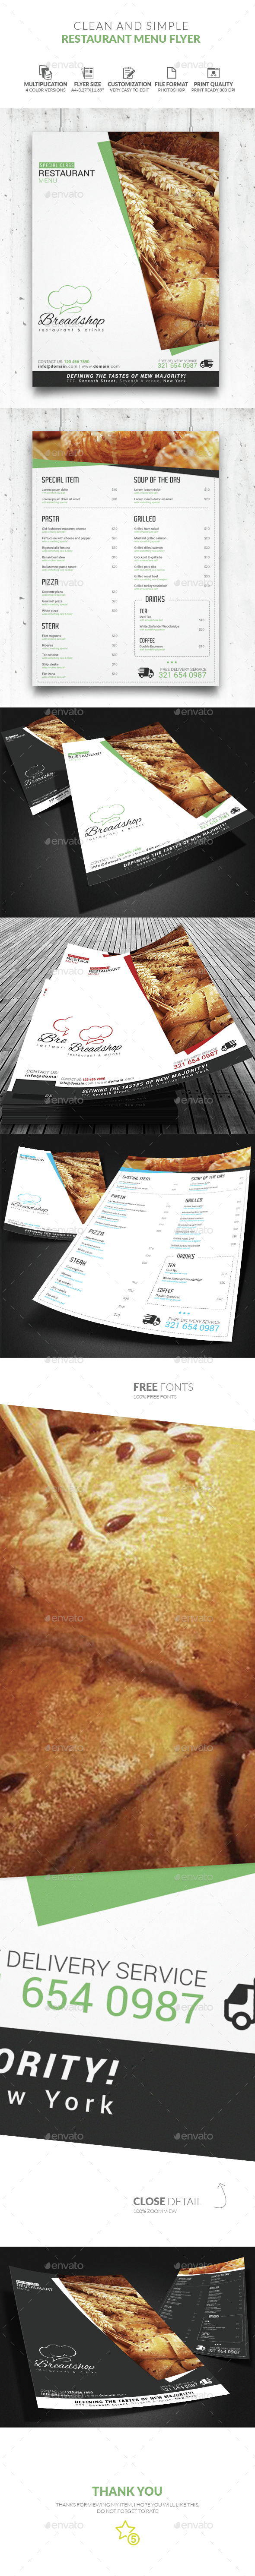 Food Menu - Restaurant Flyers